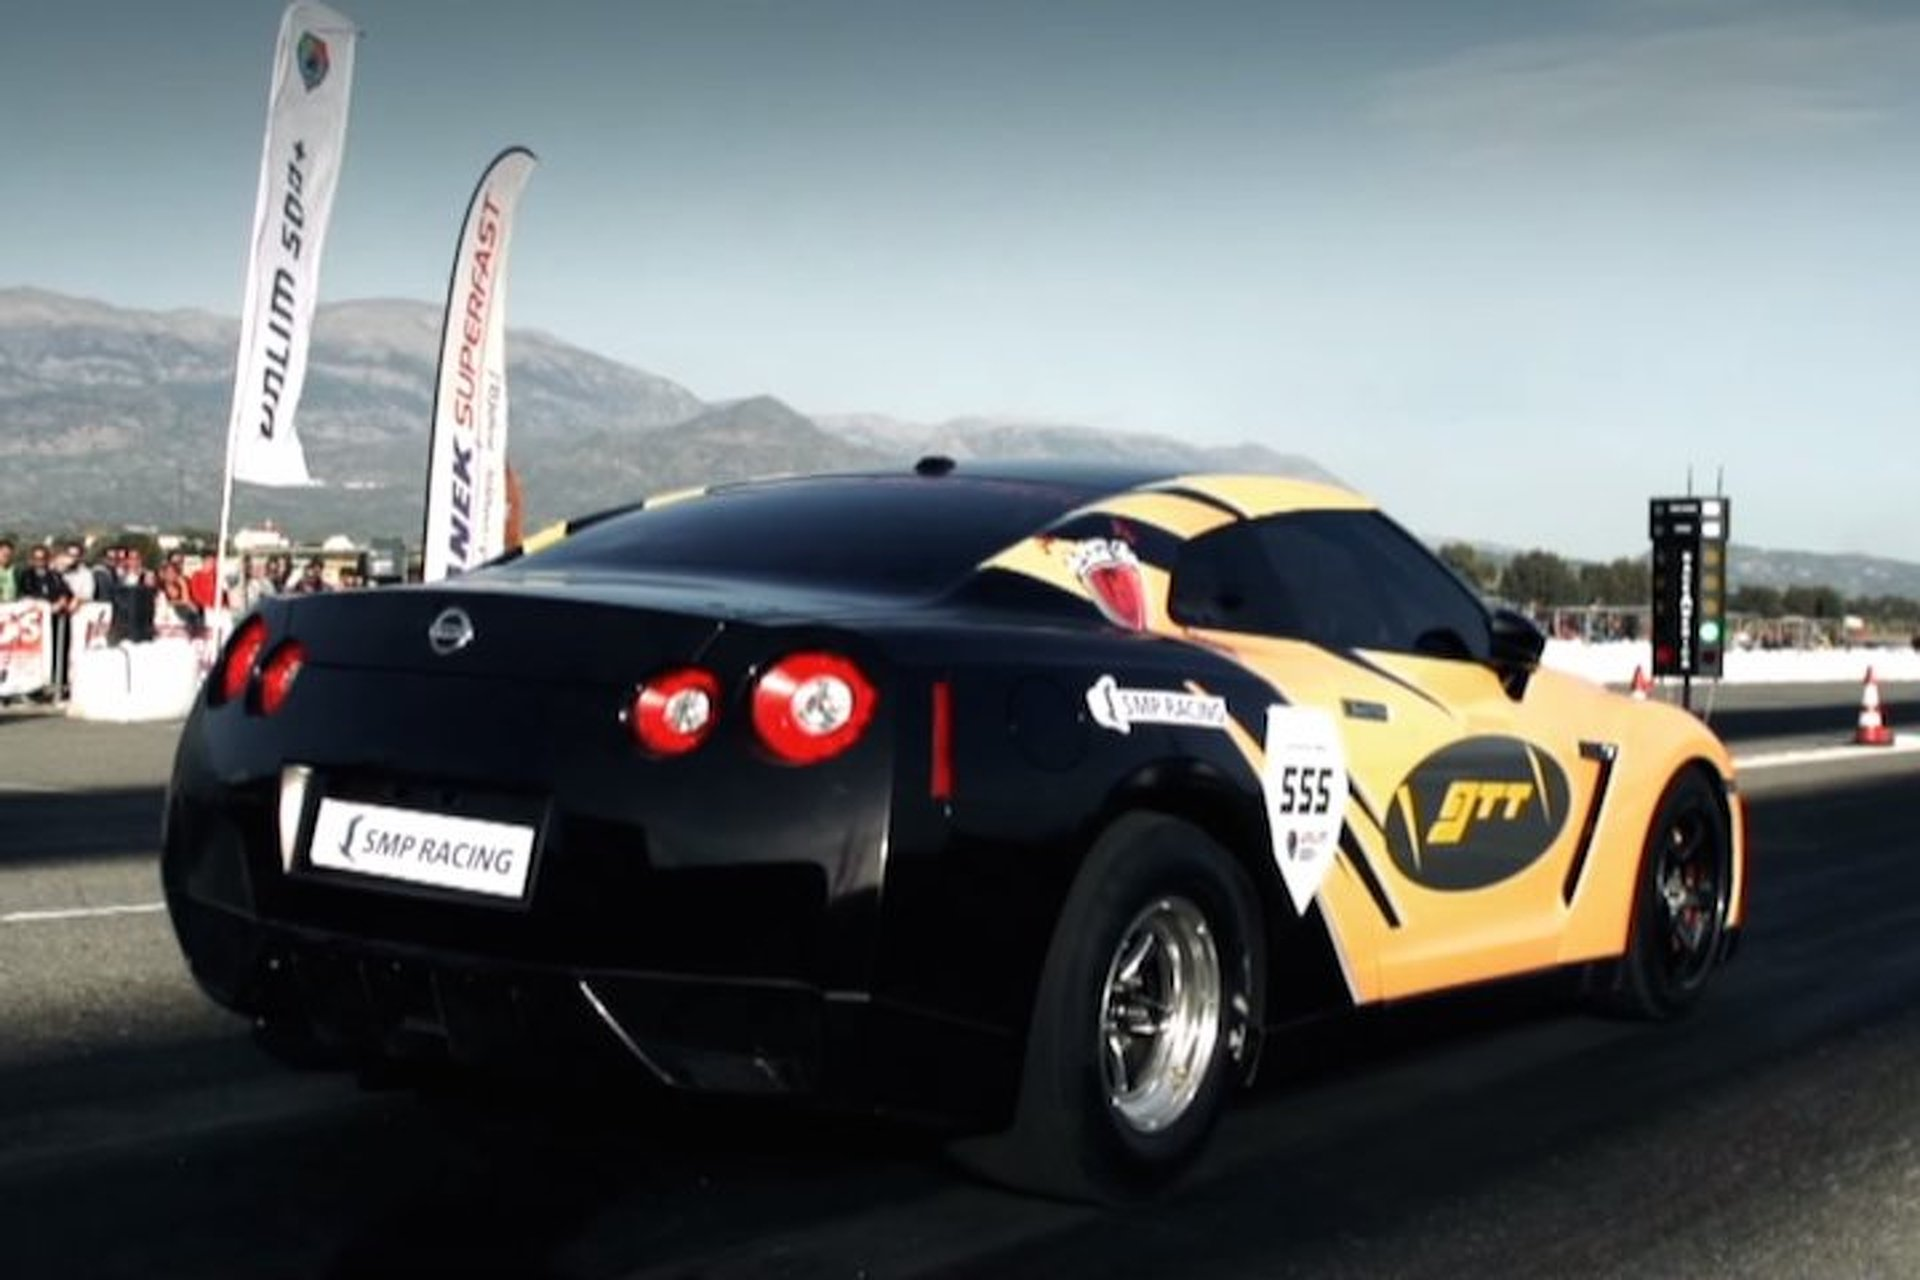 Watch Europe's Fastest GT-R Tackle the Quarter Mile